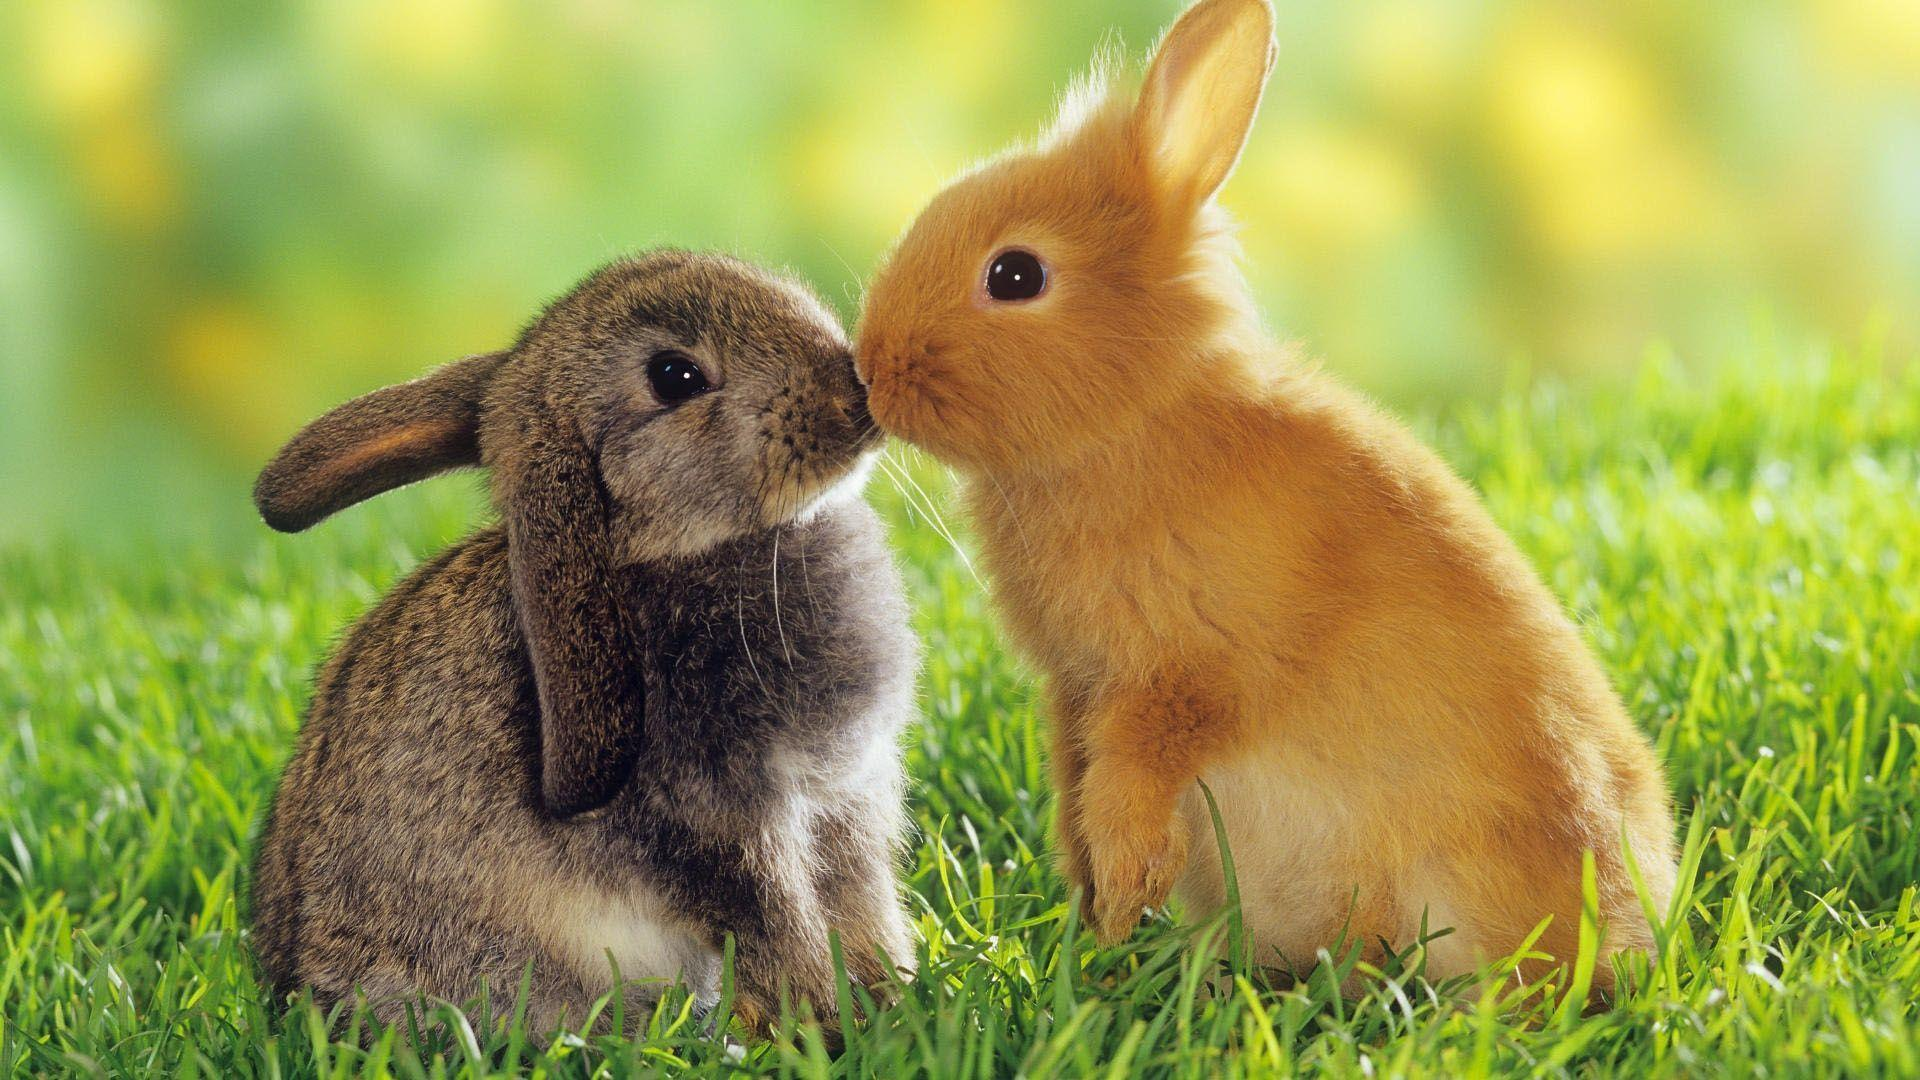 Wallpapers For Easter Bunny Wallpaper Backgrounds